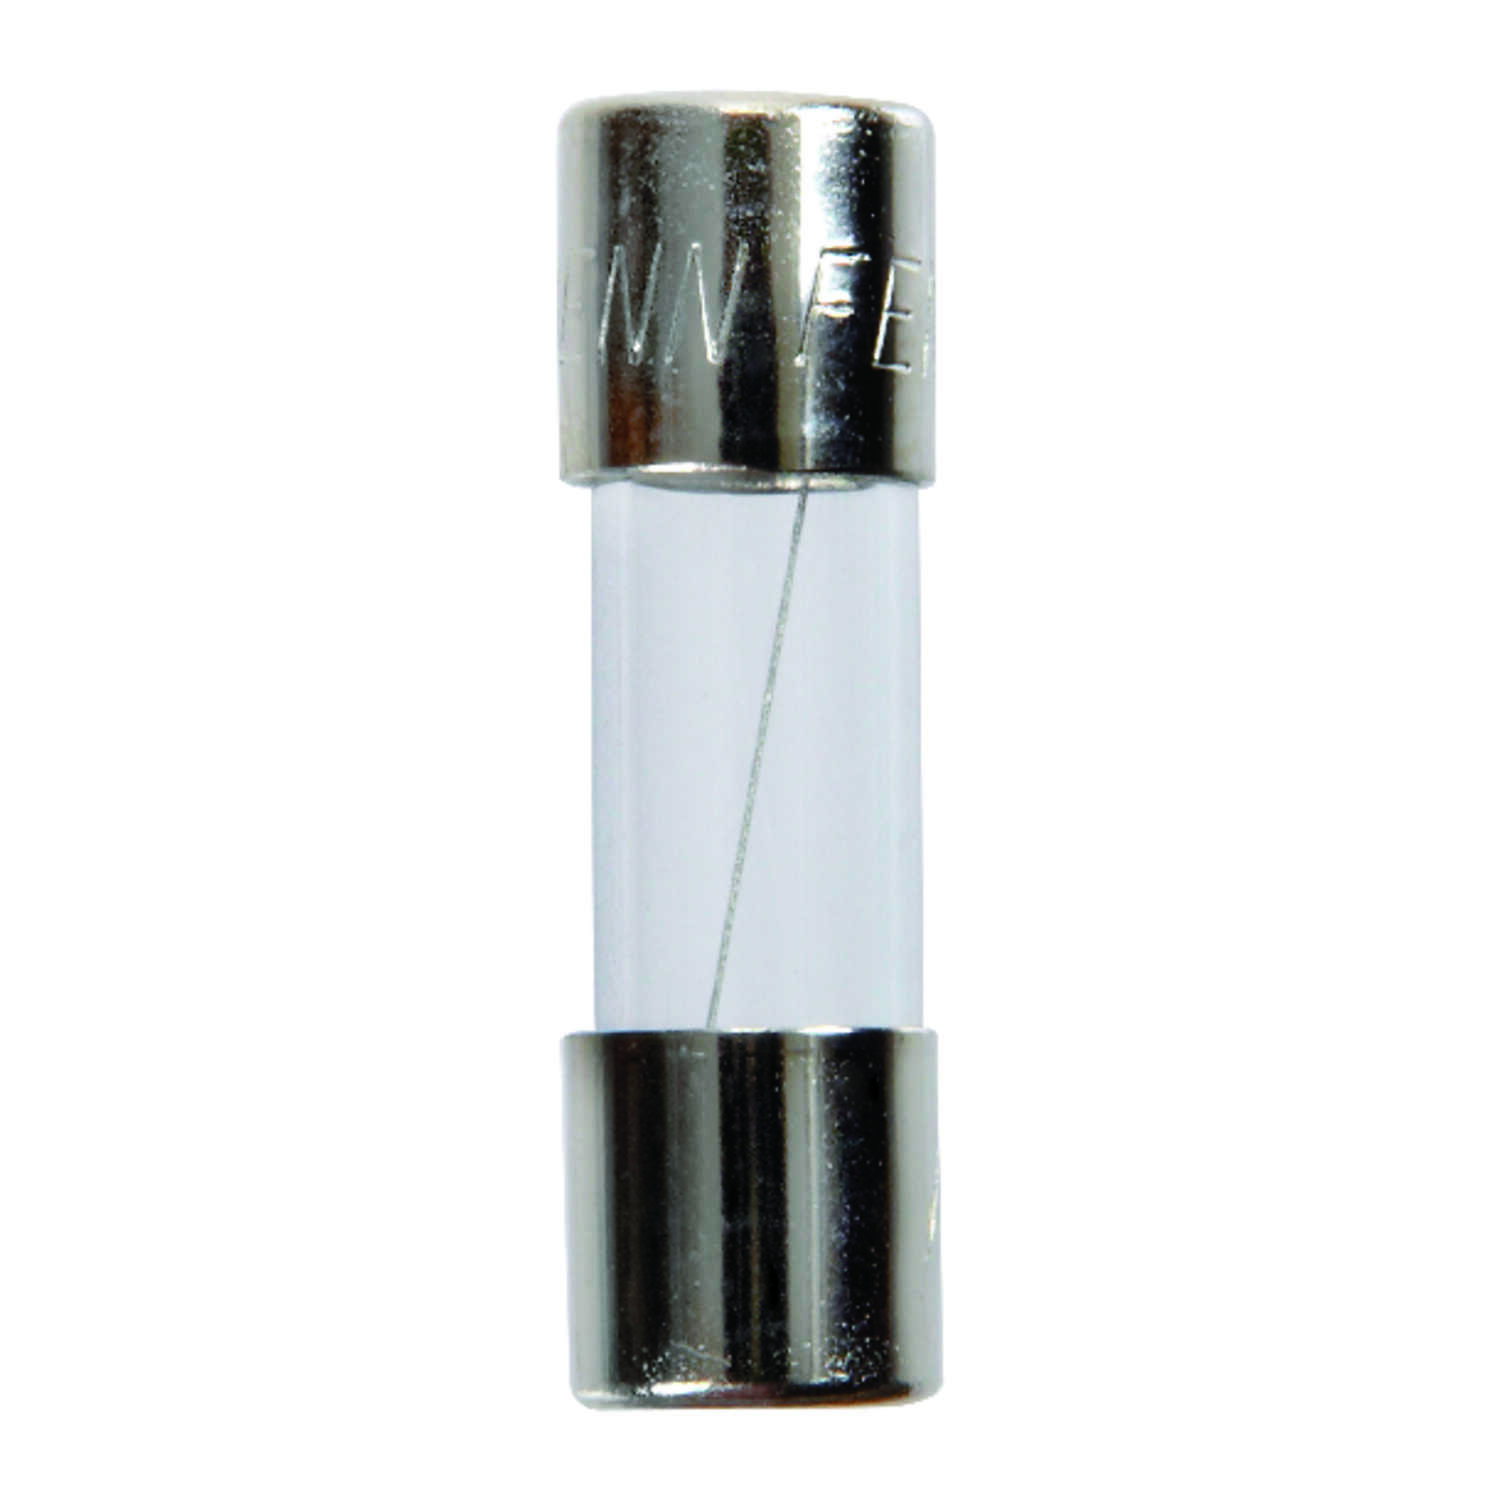 Jandorf  AGW  1 amps Fast Acting Fuse  4 pk